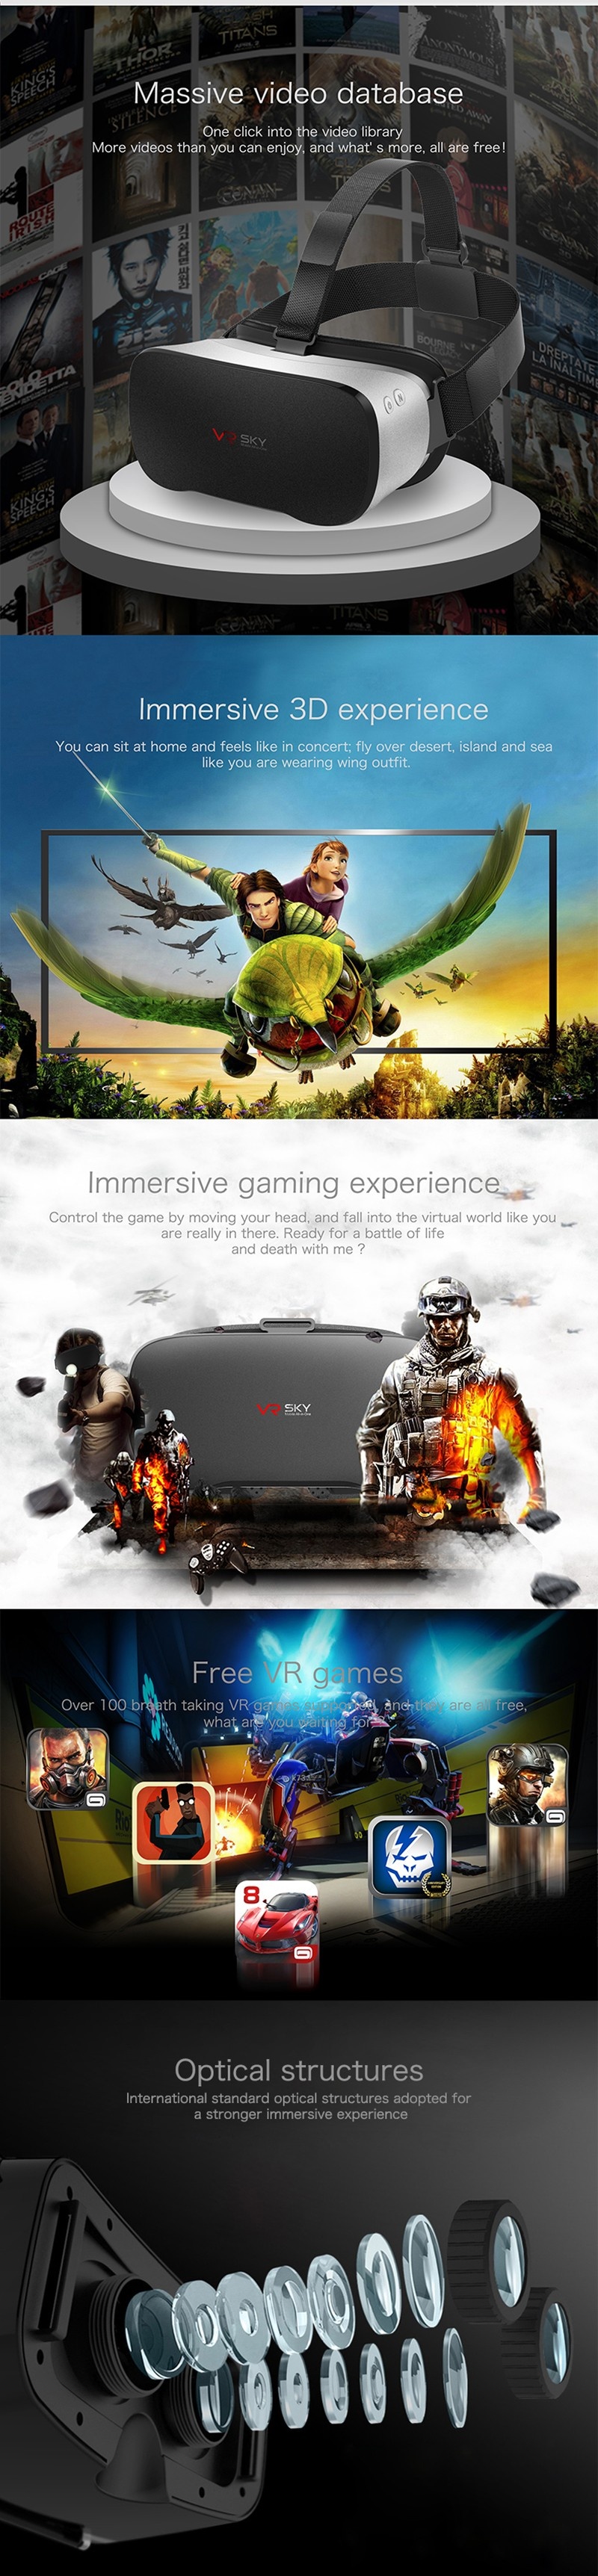 V3 H8 Octa Core 2.0GHz bluetooth 4.0 WIFI 5.5 Inches 1080P FHD Display 3D VR Virtual Reality All In One Headset